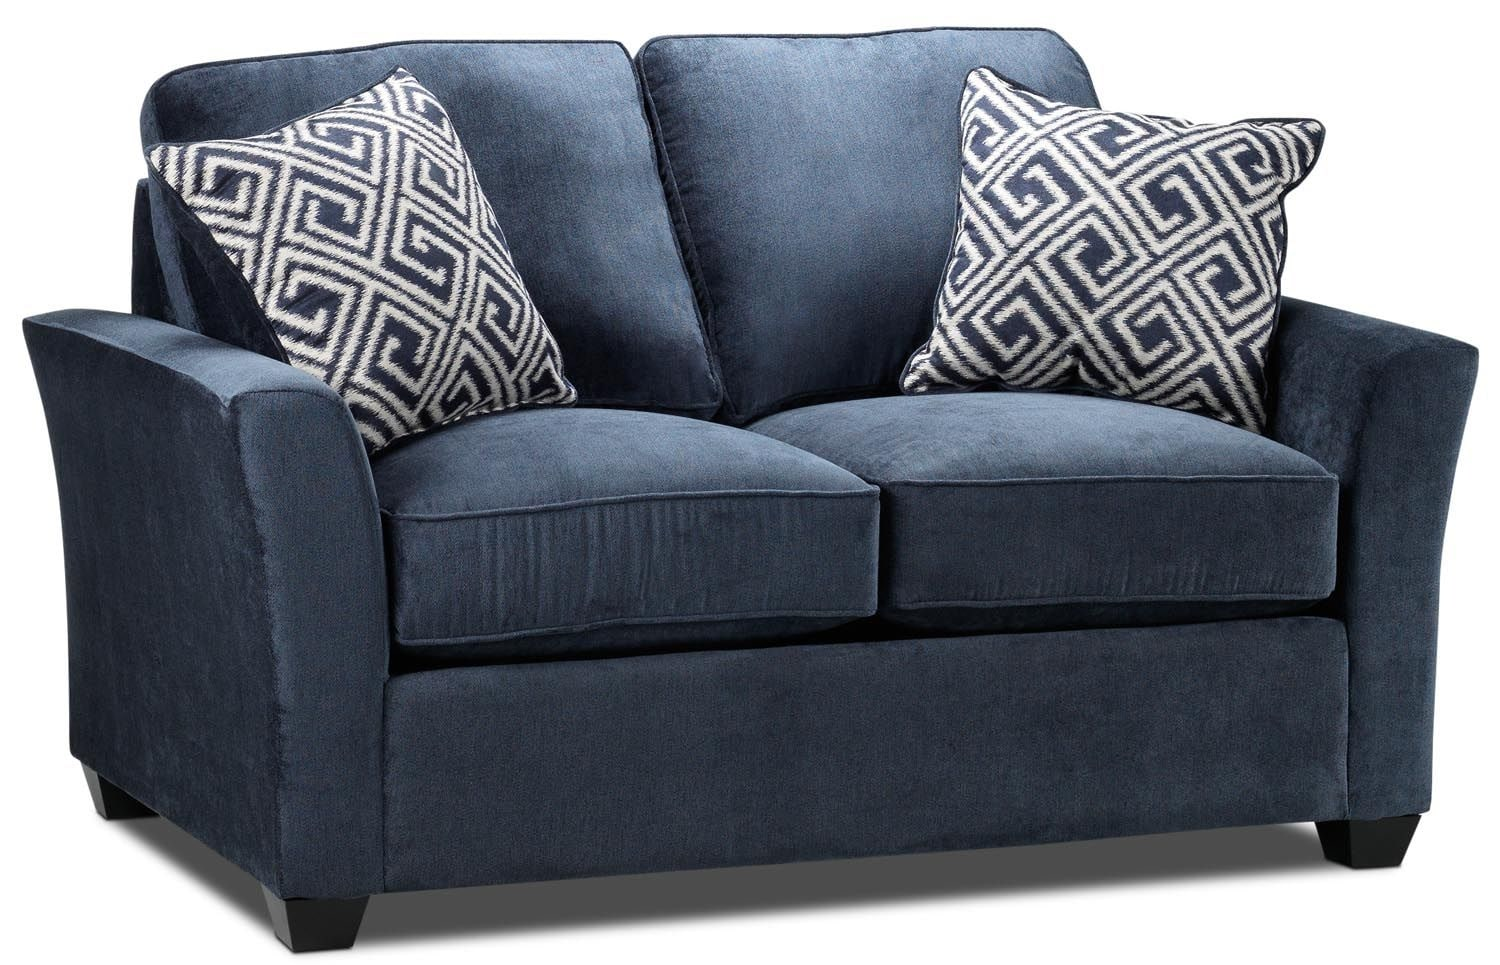 Adalyn Loveseat